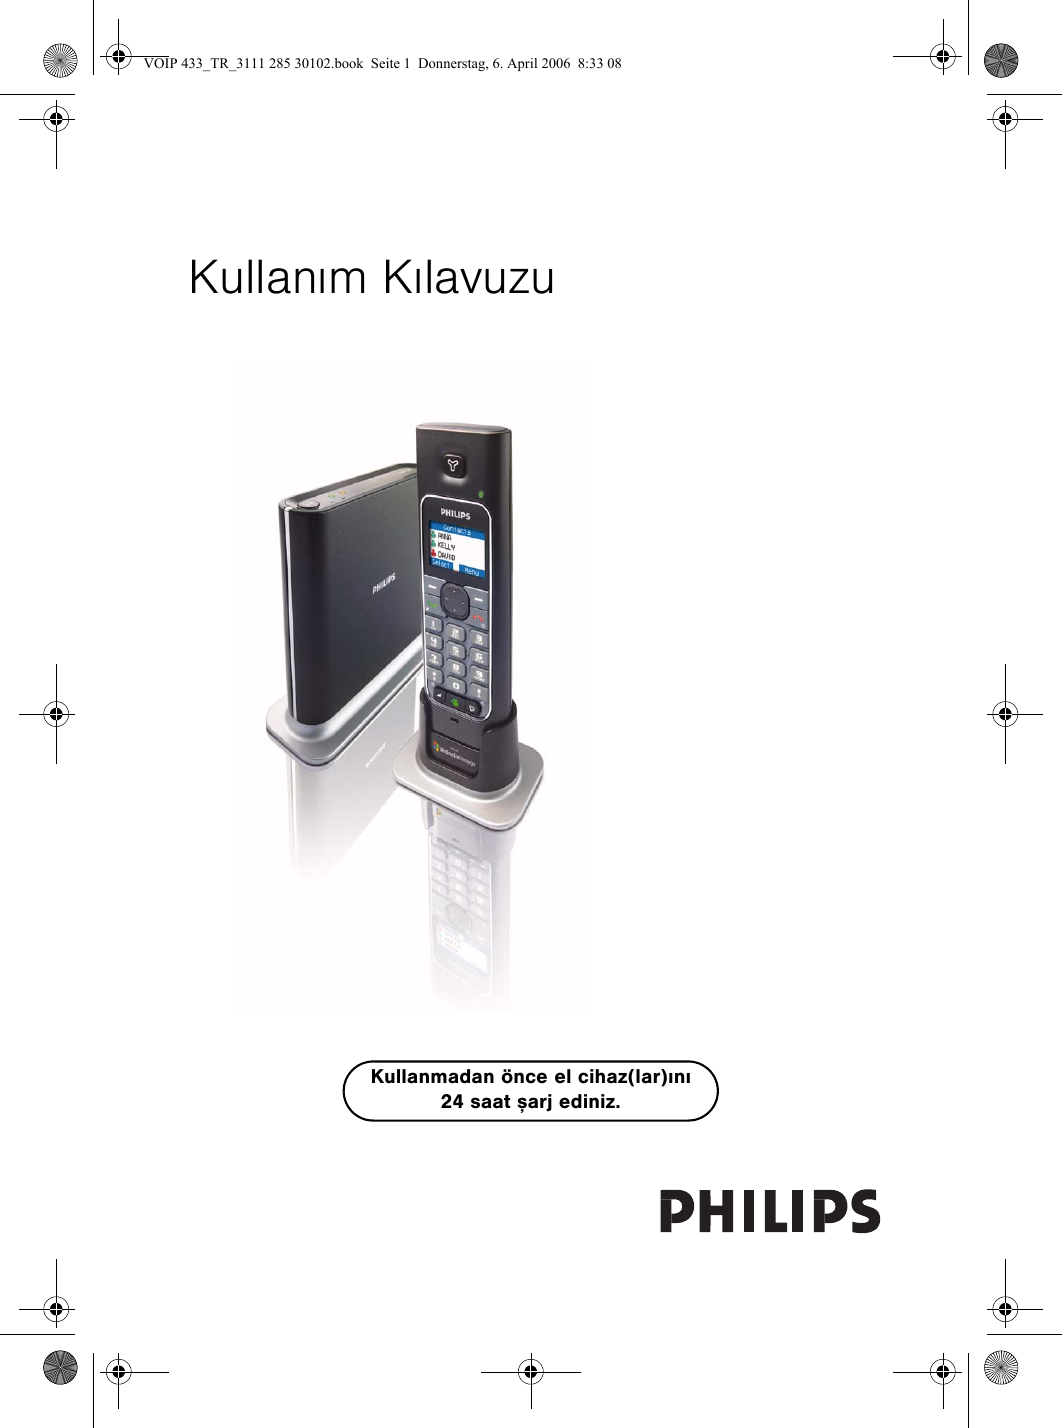 Philips Voip4331s 01 Voip 433 Tr 3111 285 30101 User Manual